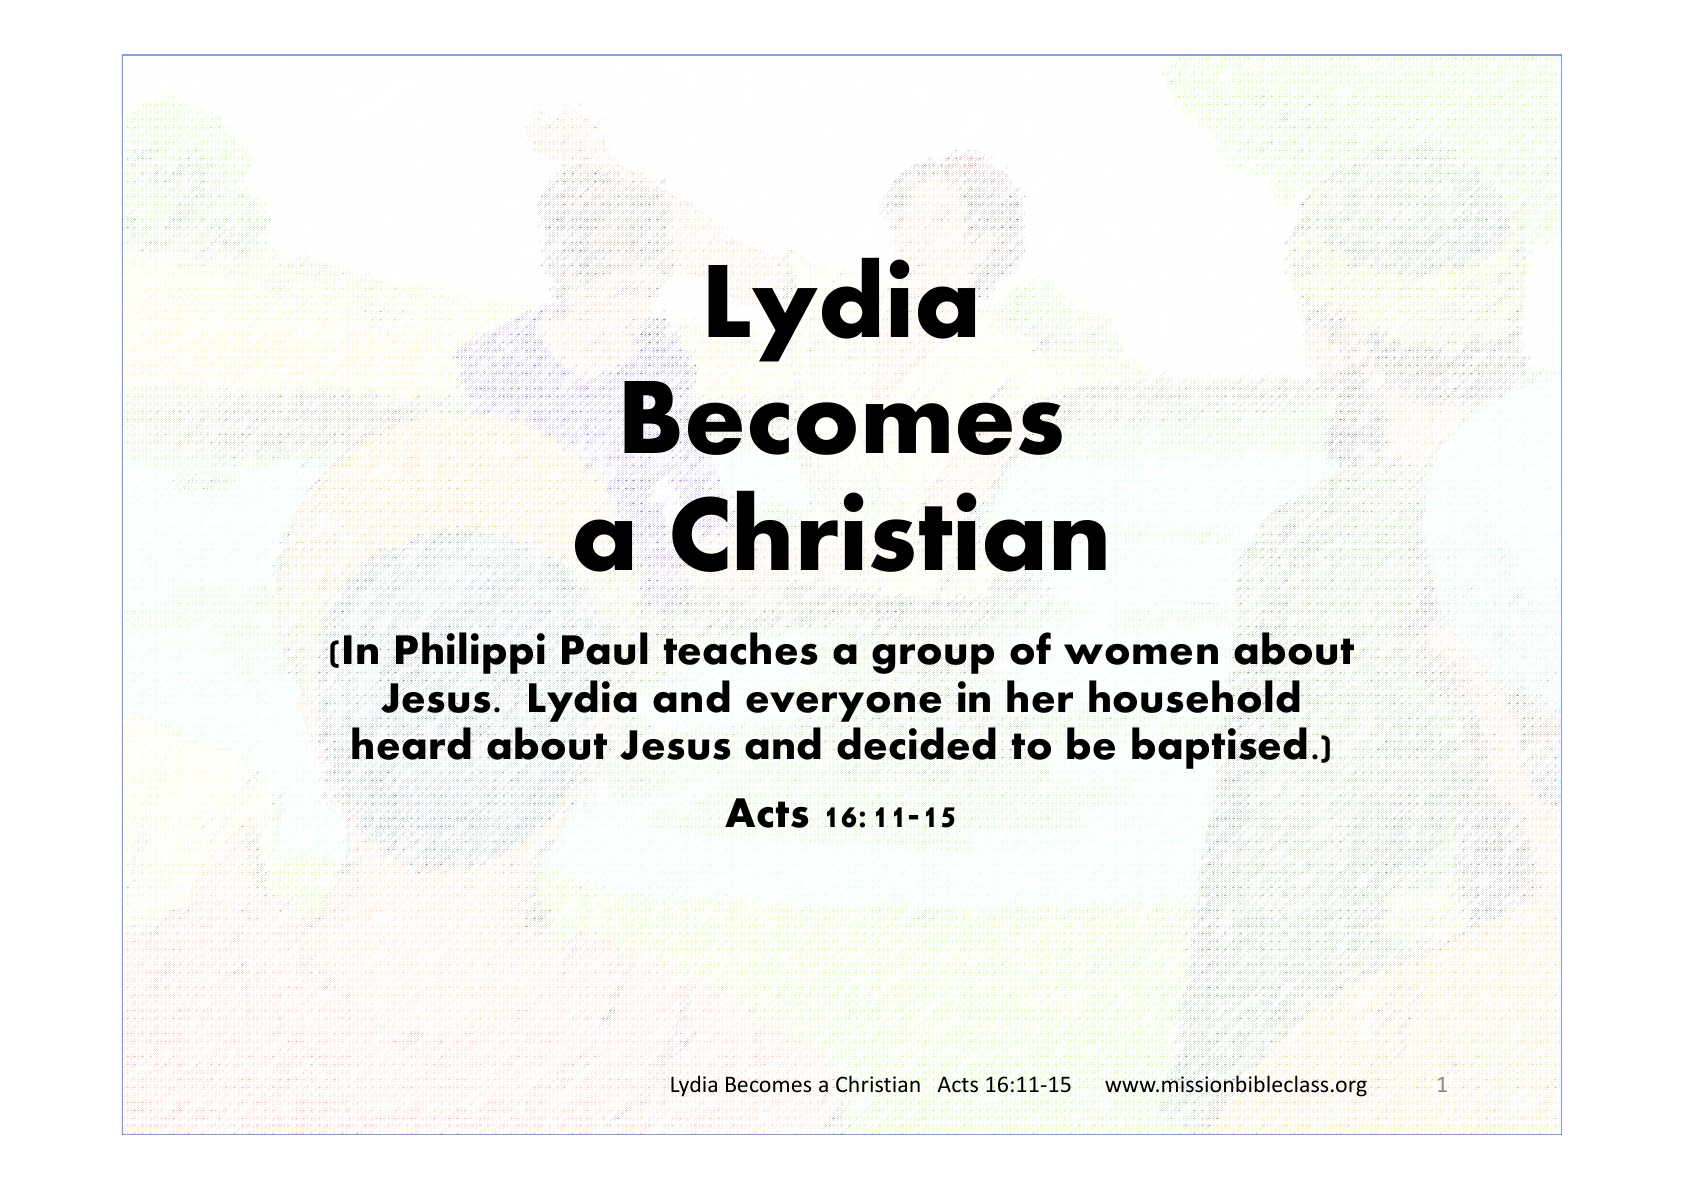 Lydia Becomes Christian Mission Bible Class